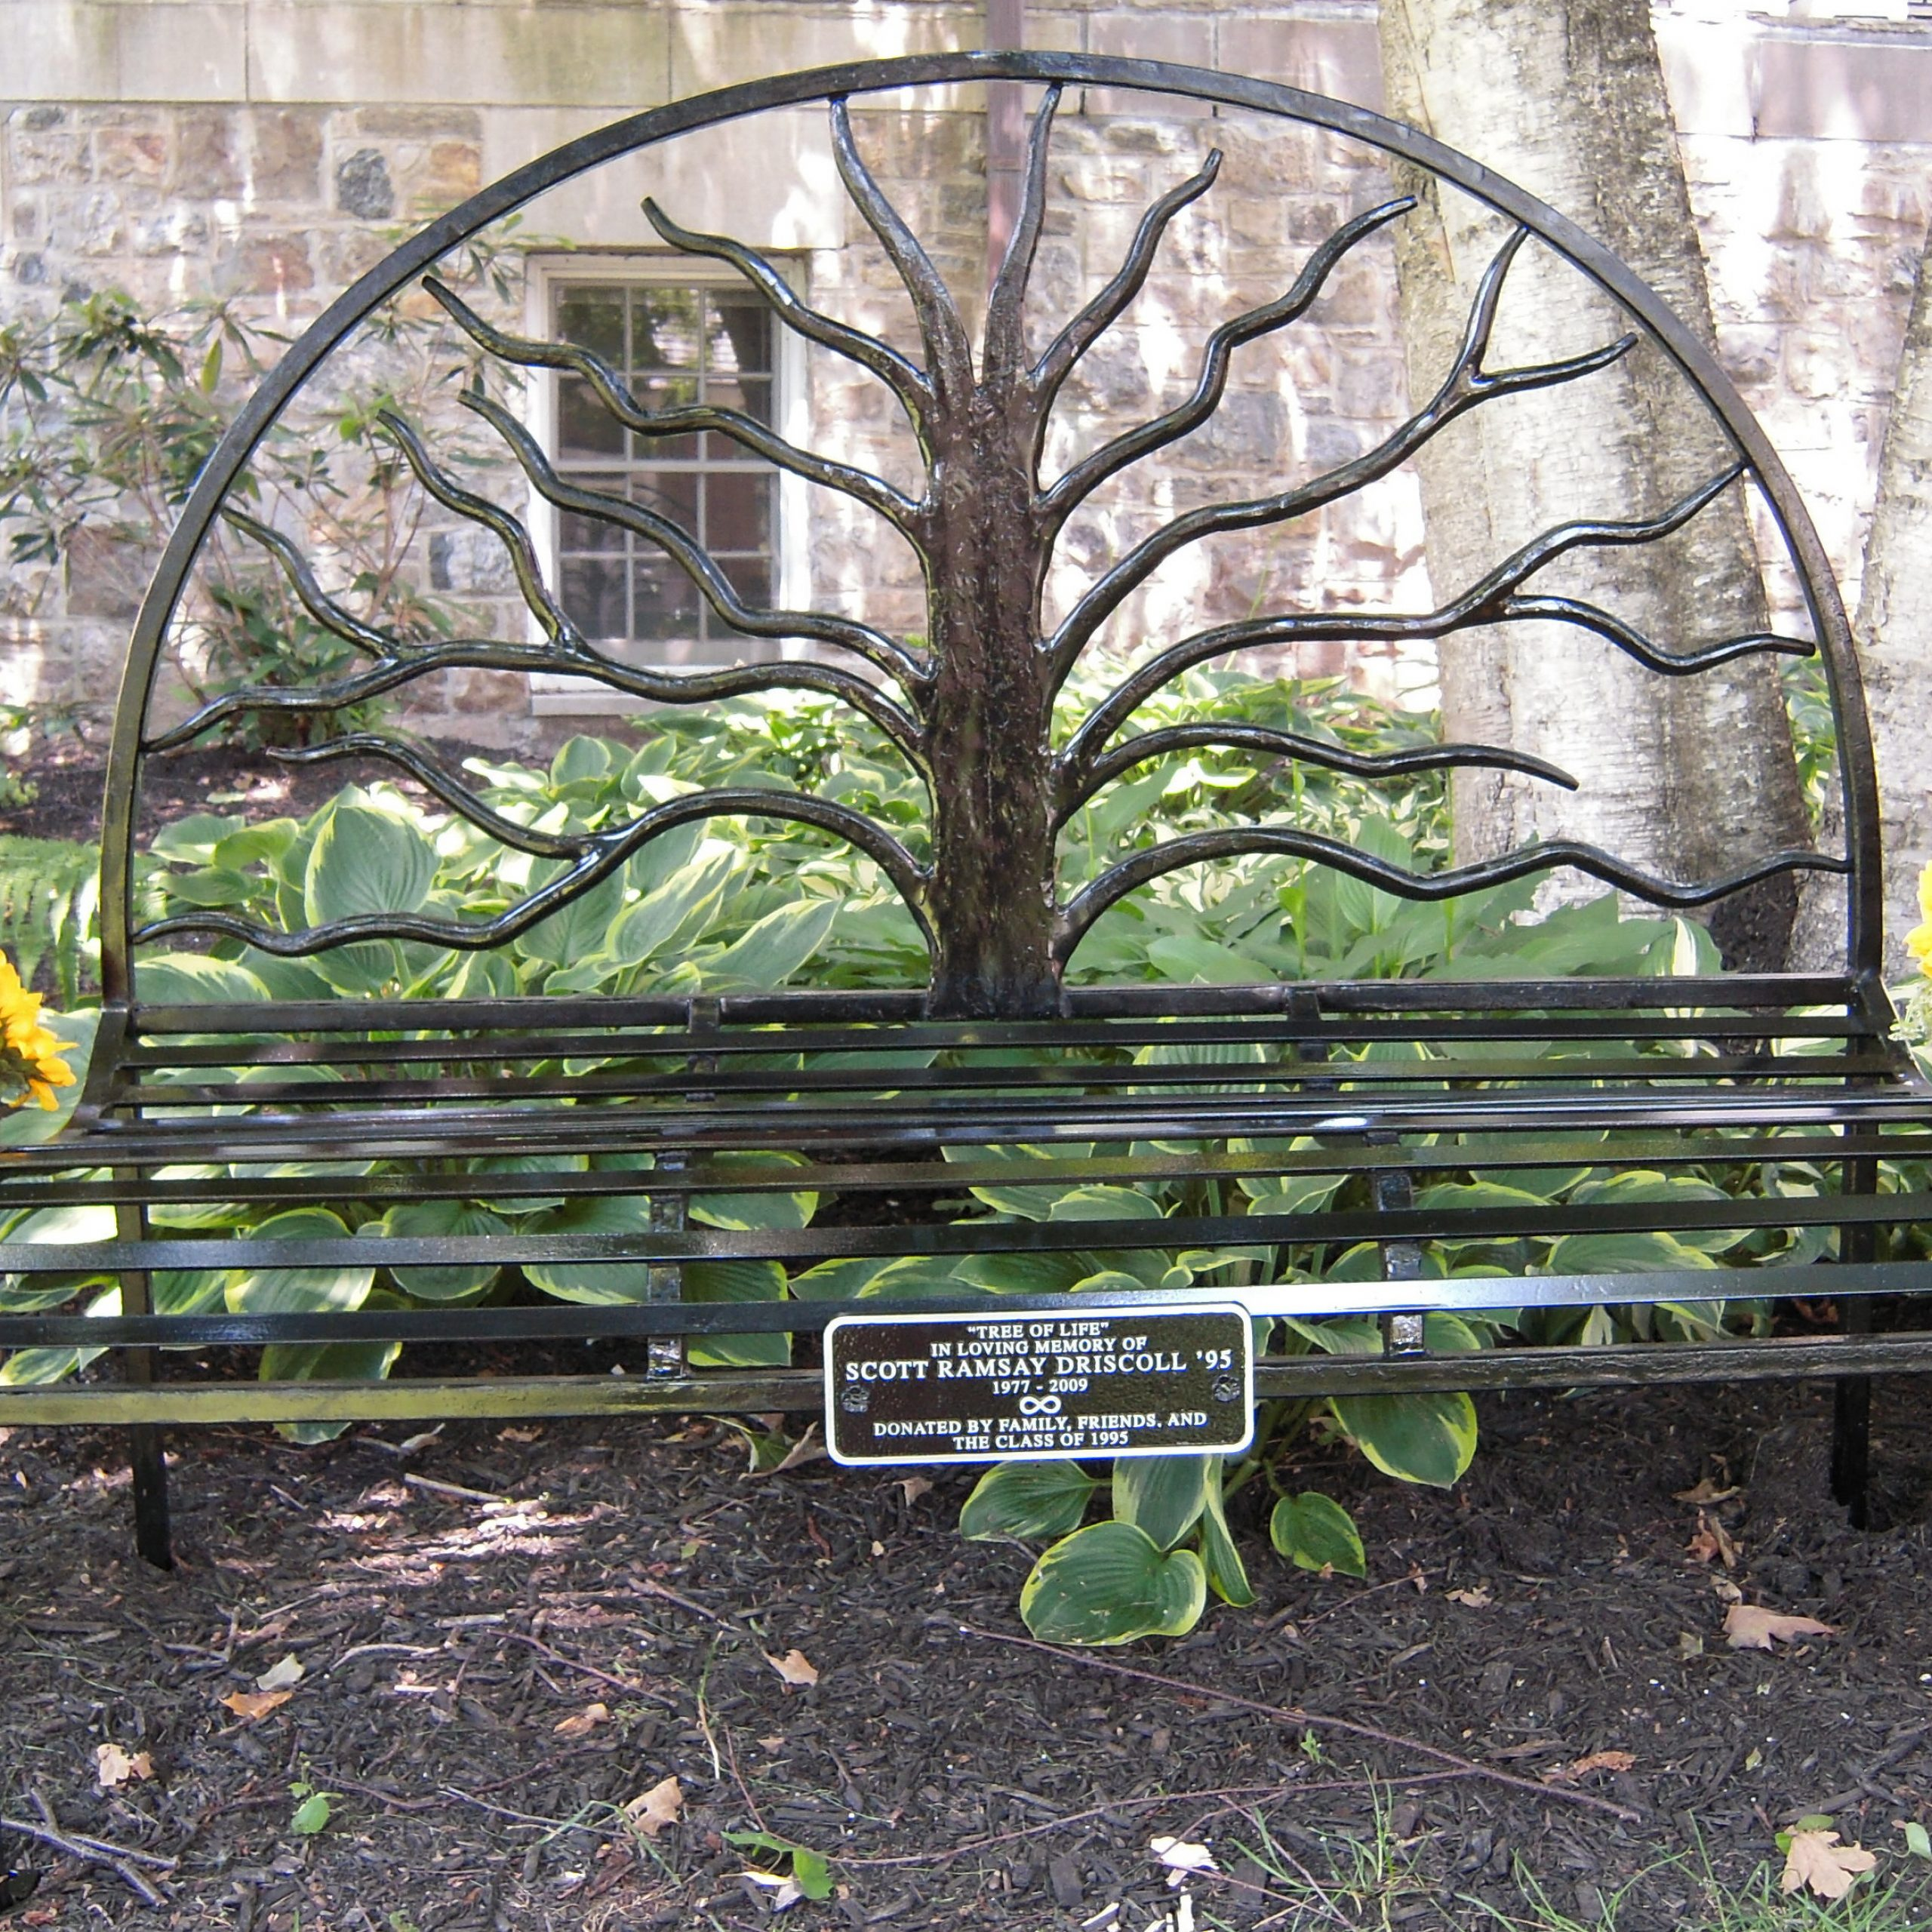 Benches & Garden | Wallacemetalworks1 Intended For Tree Of Life Iron Garden Benches (View 14 of 25)